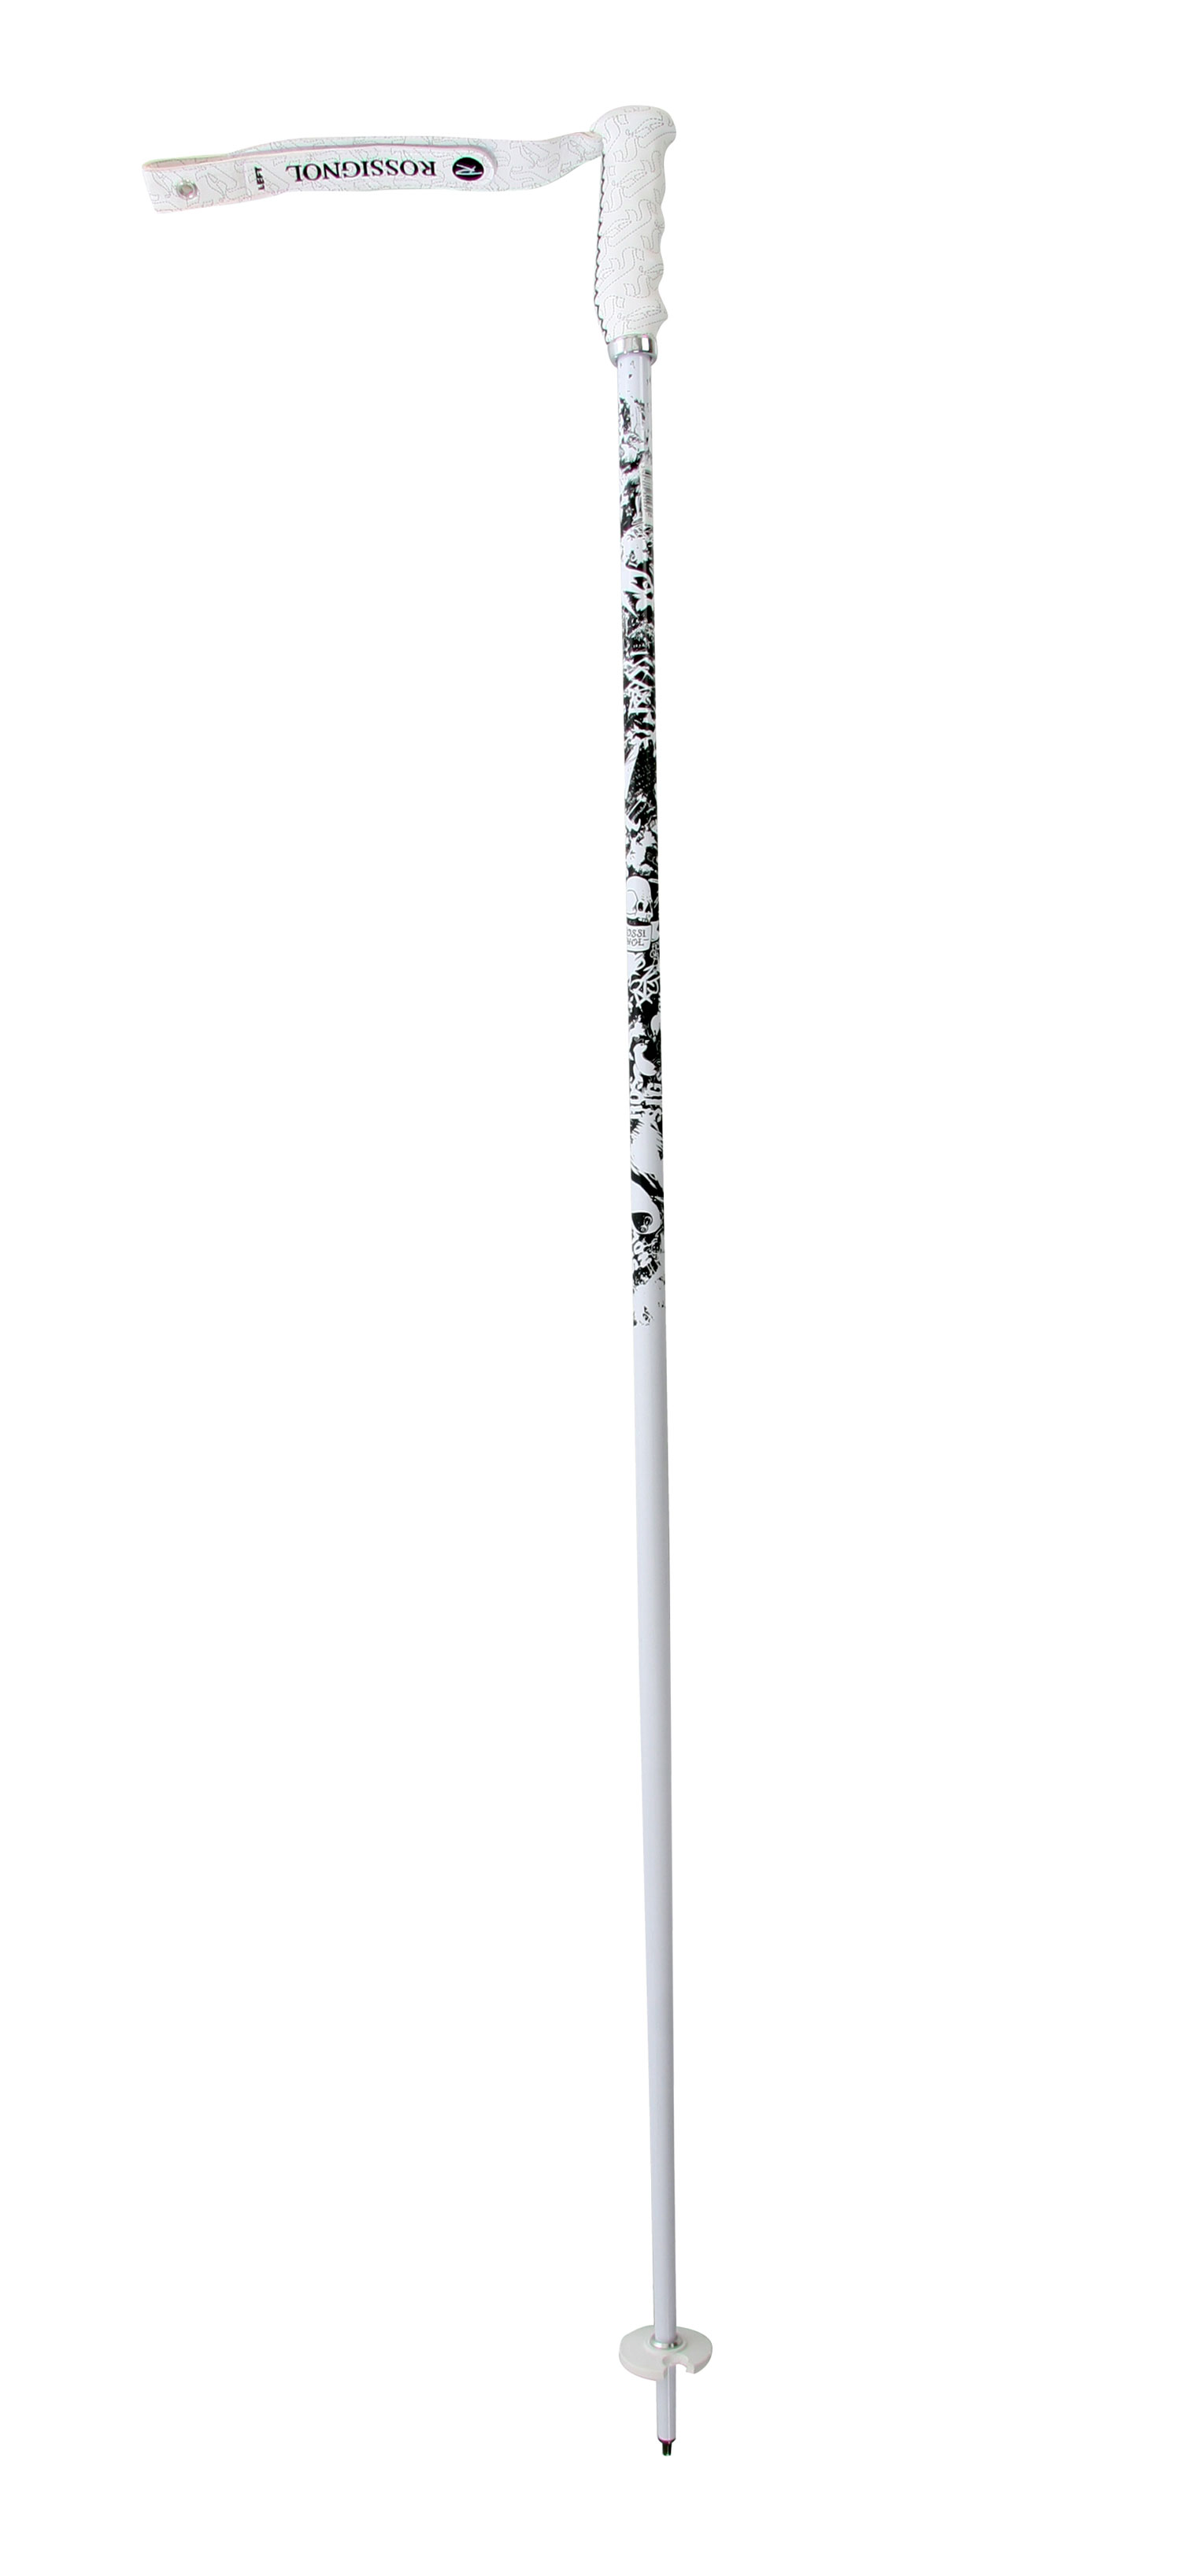 Ski Key Features of the Rossignol Sas Pro Ski Poles: Strap : Velcro Vinyl Basket : Course 51 Tip : Carbide Shaft - diameter : 18 Shaft - type : 7075 x 0,8 Grip : World Cup Vinyl - $59.95